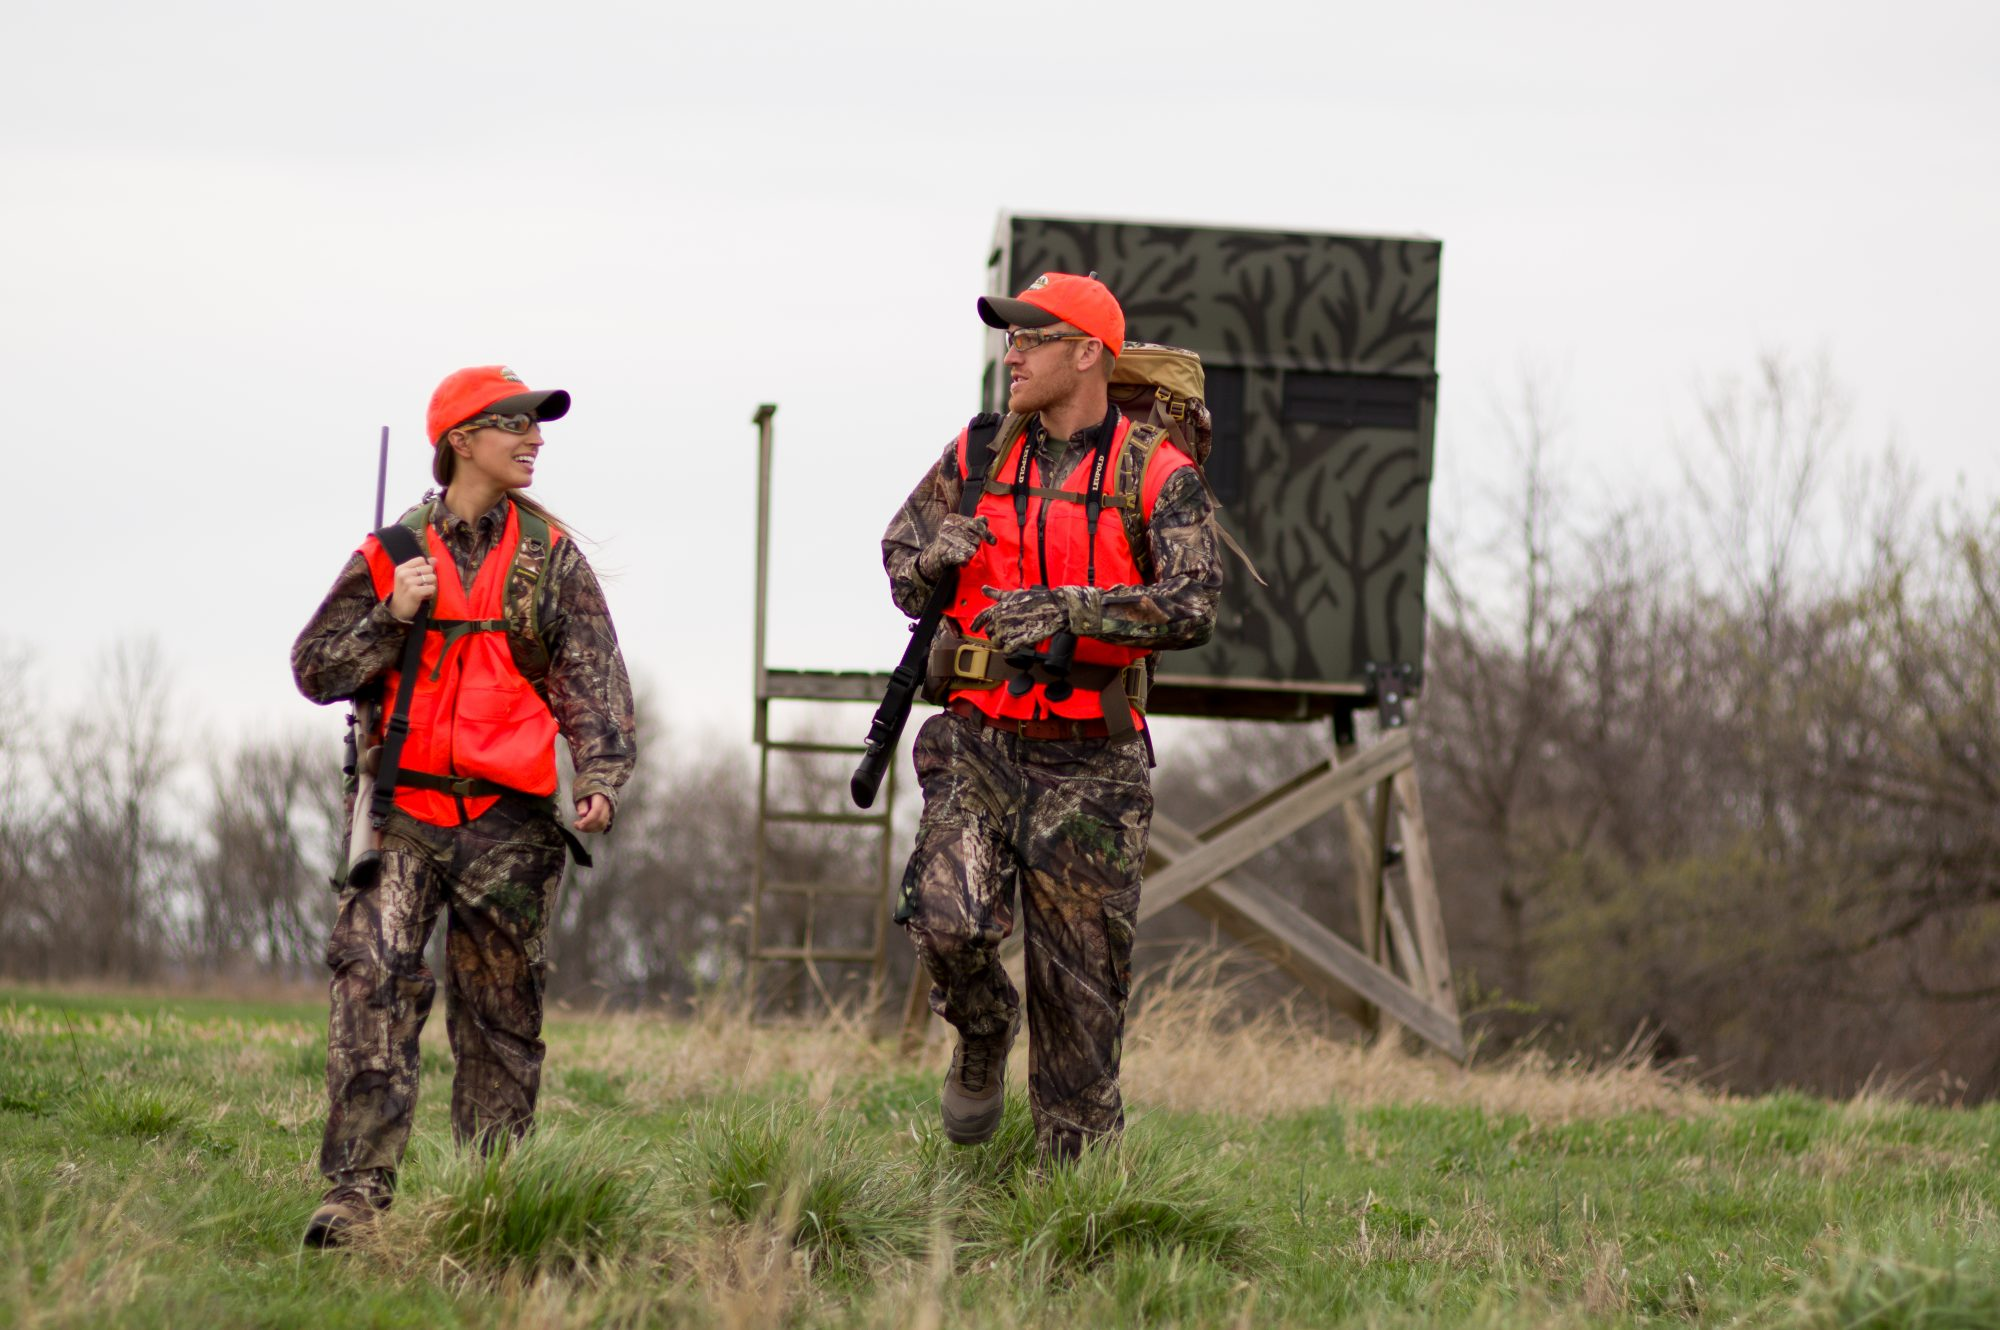 Conservation & Hunting